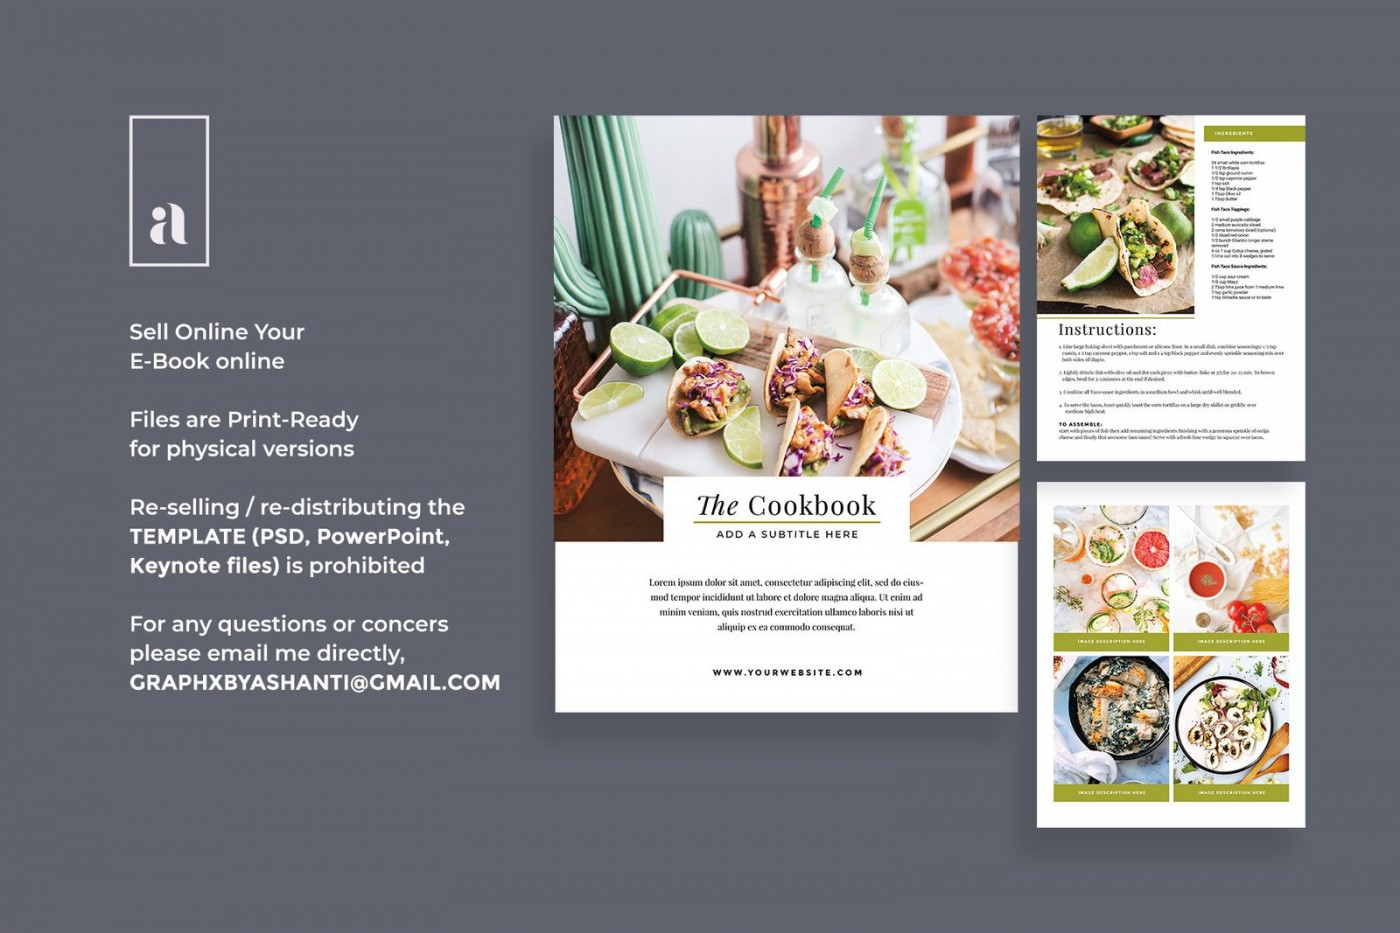 004 Magnificent Create Your Own Cookbook Free Template Design 1400